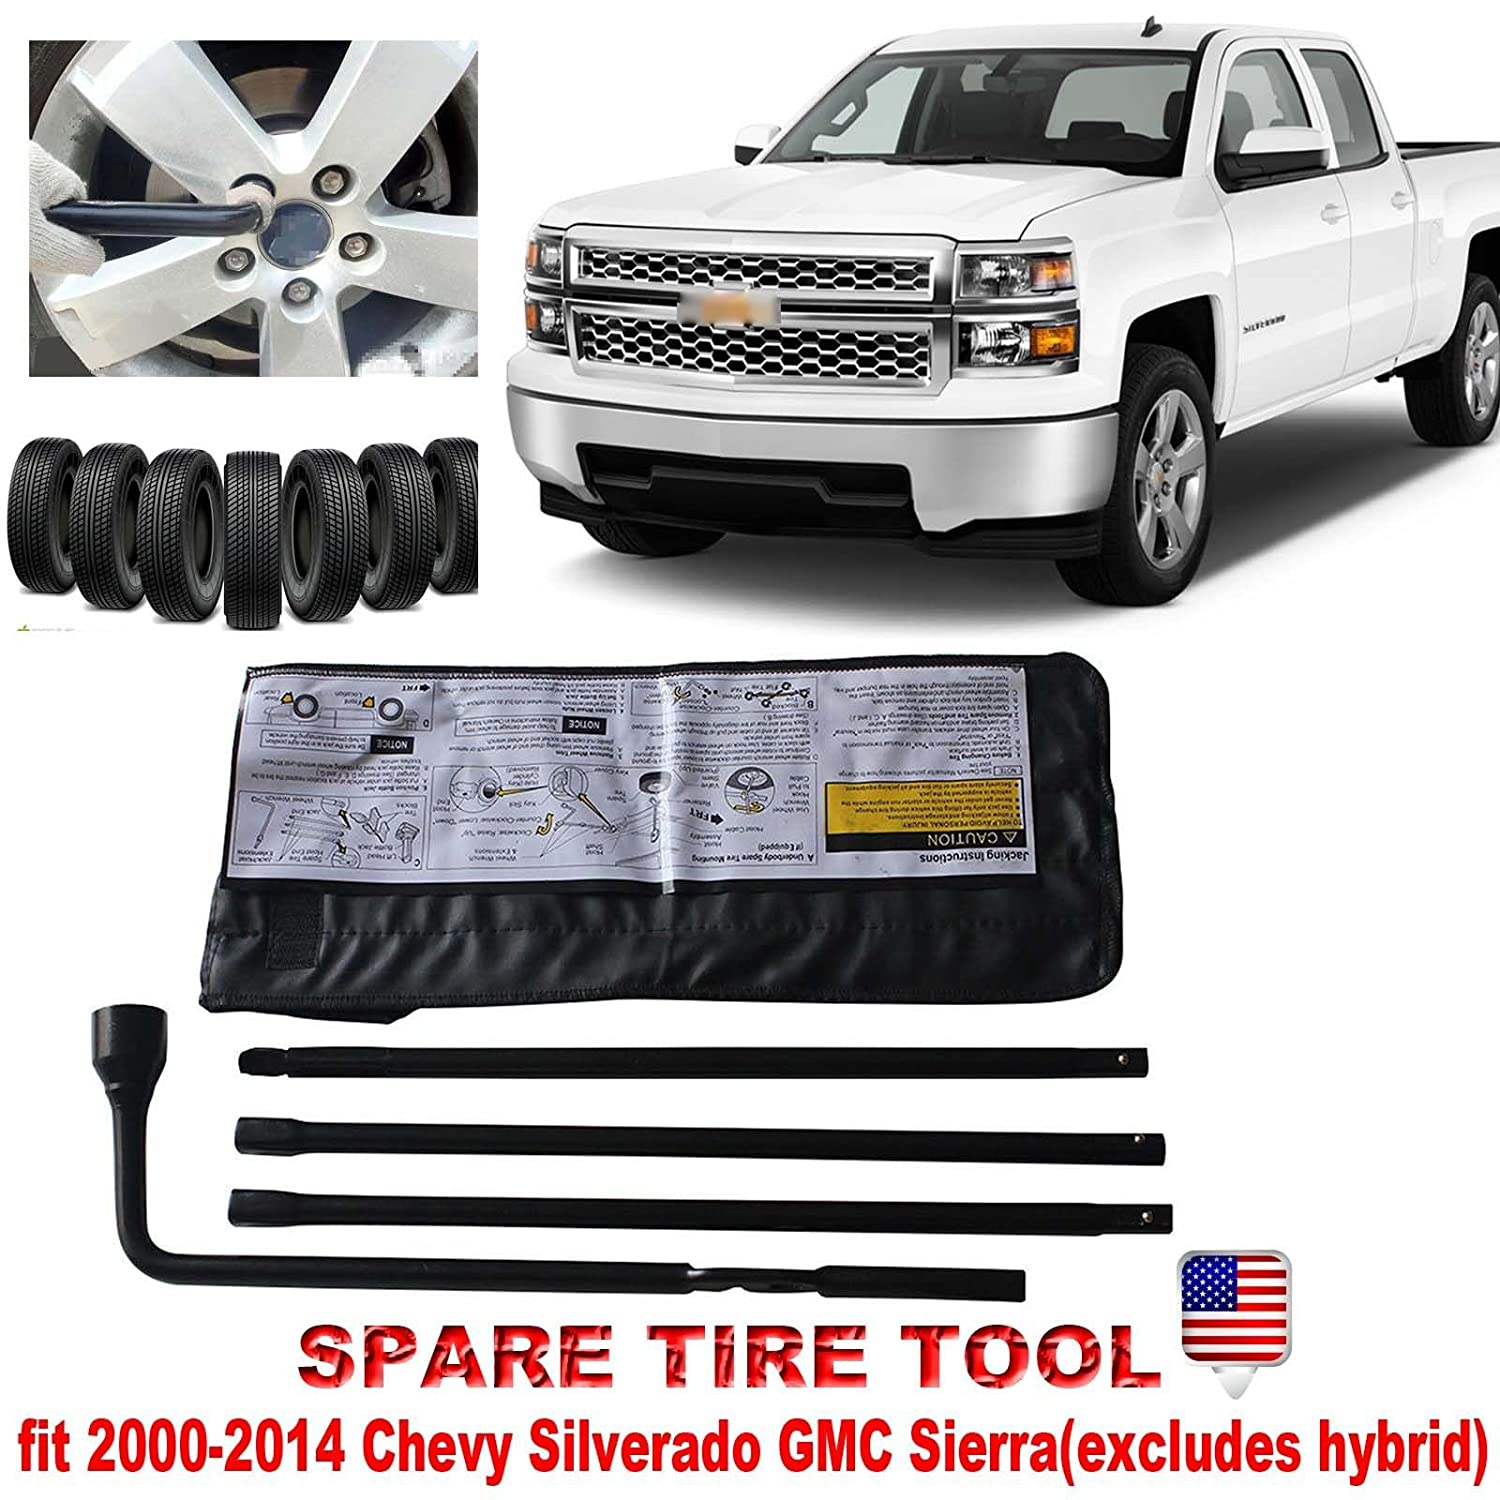 NEW Spare Tire Tool Wheel Lug Wrench Kit For Chevy Silverado 1500 / GMC Sierra 1500 With Carry Case Autobaba 22969377 20782708